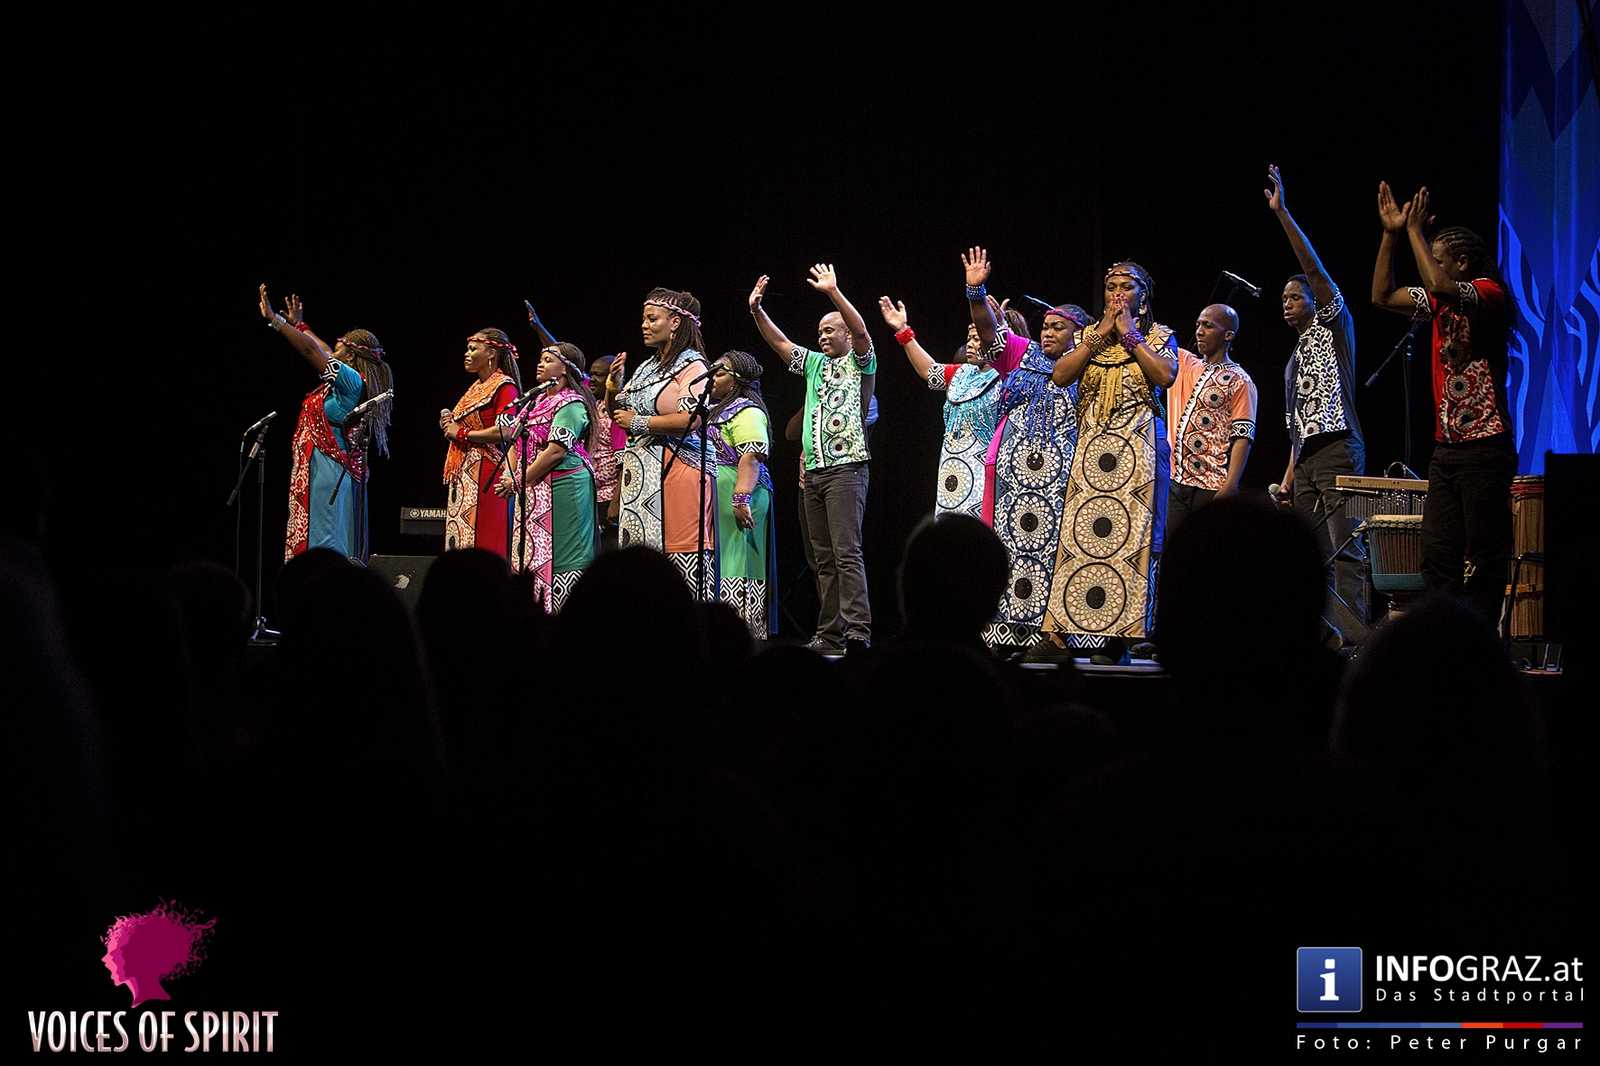 soweto gospel choir internationales chorfestival statdthalle graz voices of spirit eroeffnung festivals 2016 146